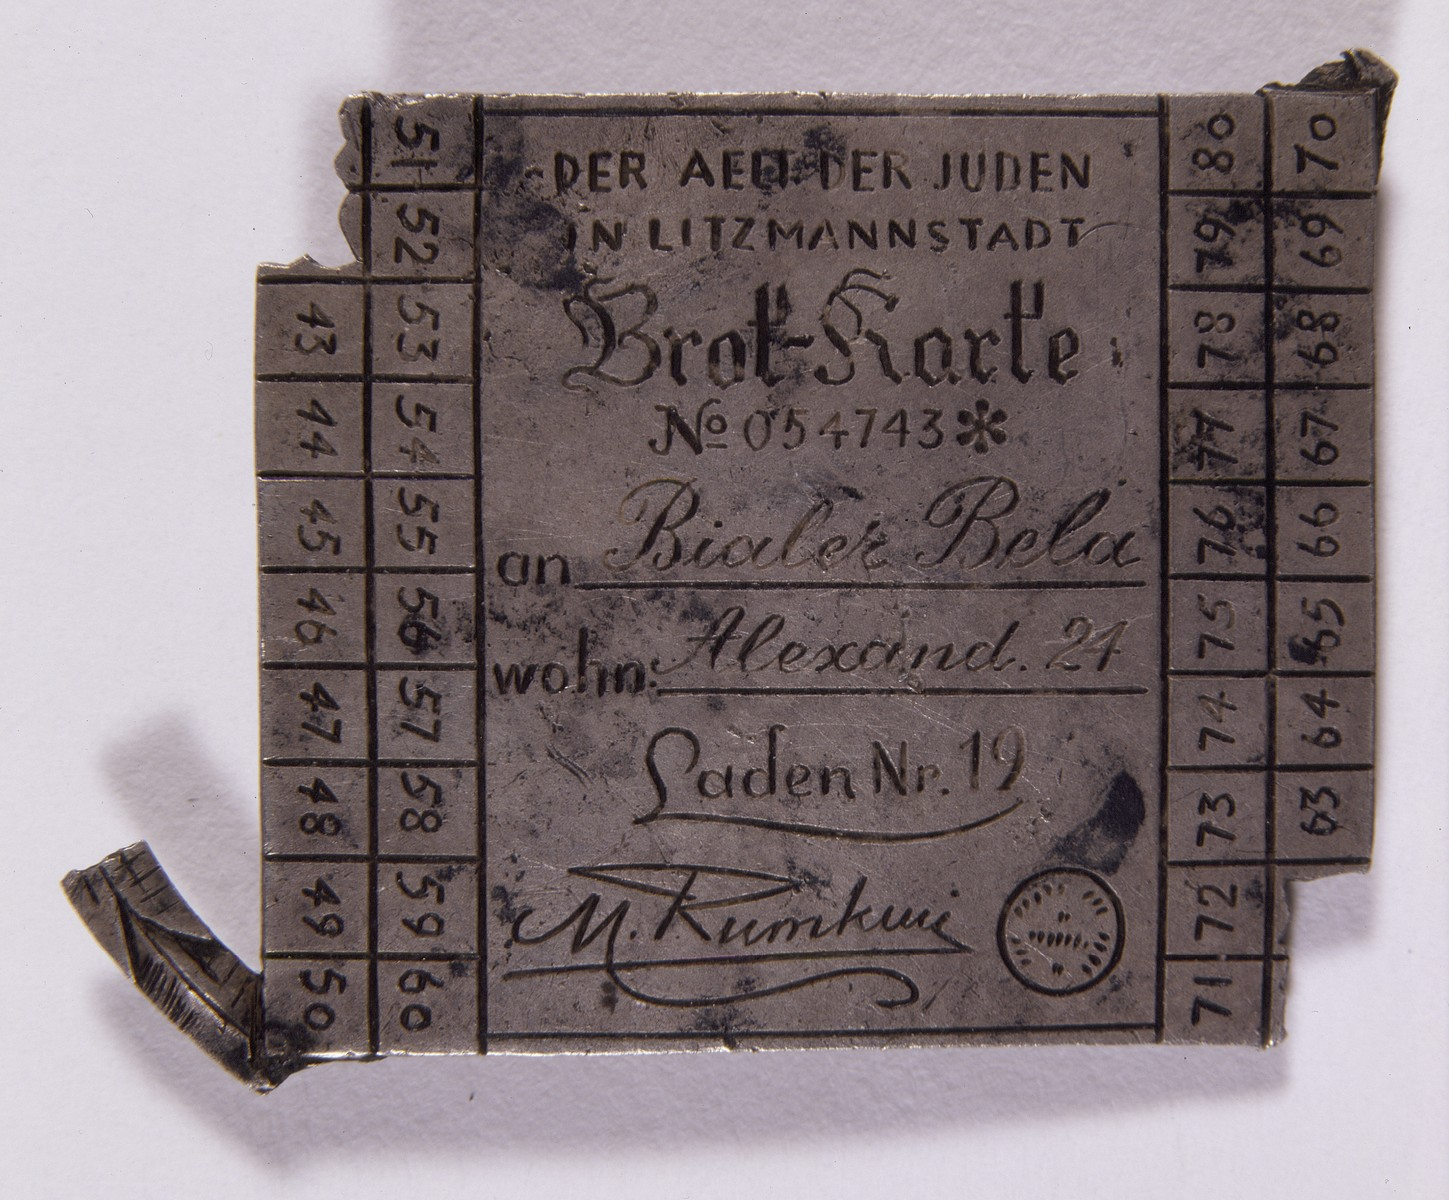 Metal brooch designed in imitation of the ration card issued to Bela Bialer in the Lodz ghetto.  The pin mimics the signature of Chaim Rumkowski, chairman of the Lodz ghetto Judenrat.  The pin may have been created by Chaim Klieger, a Lodz ghetto resident.